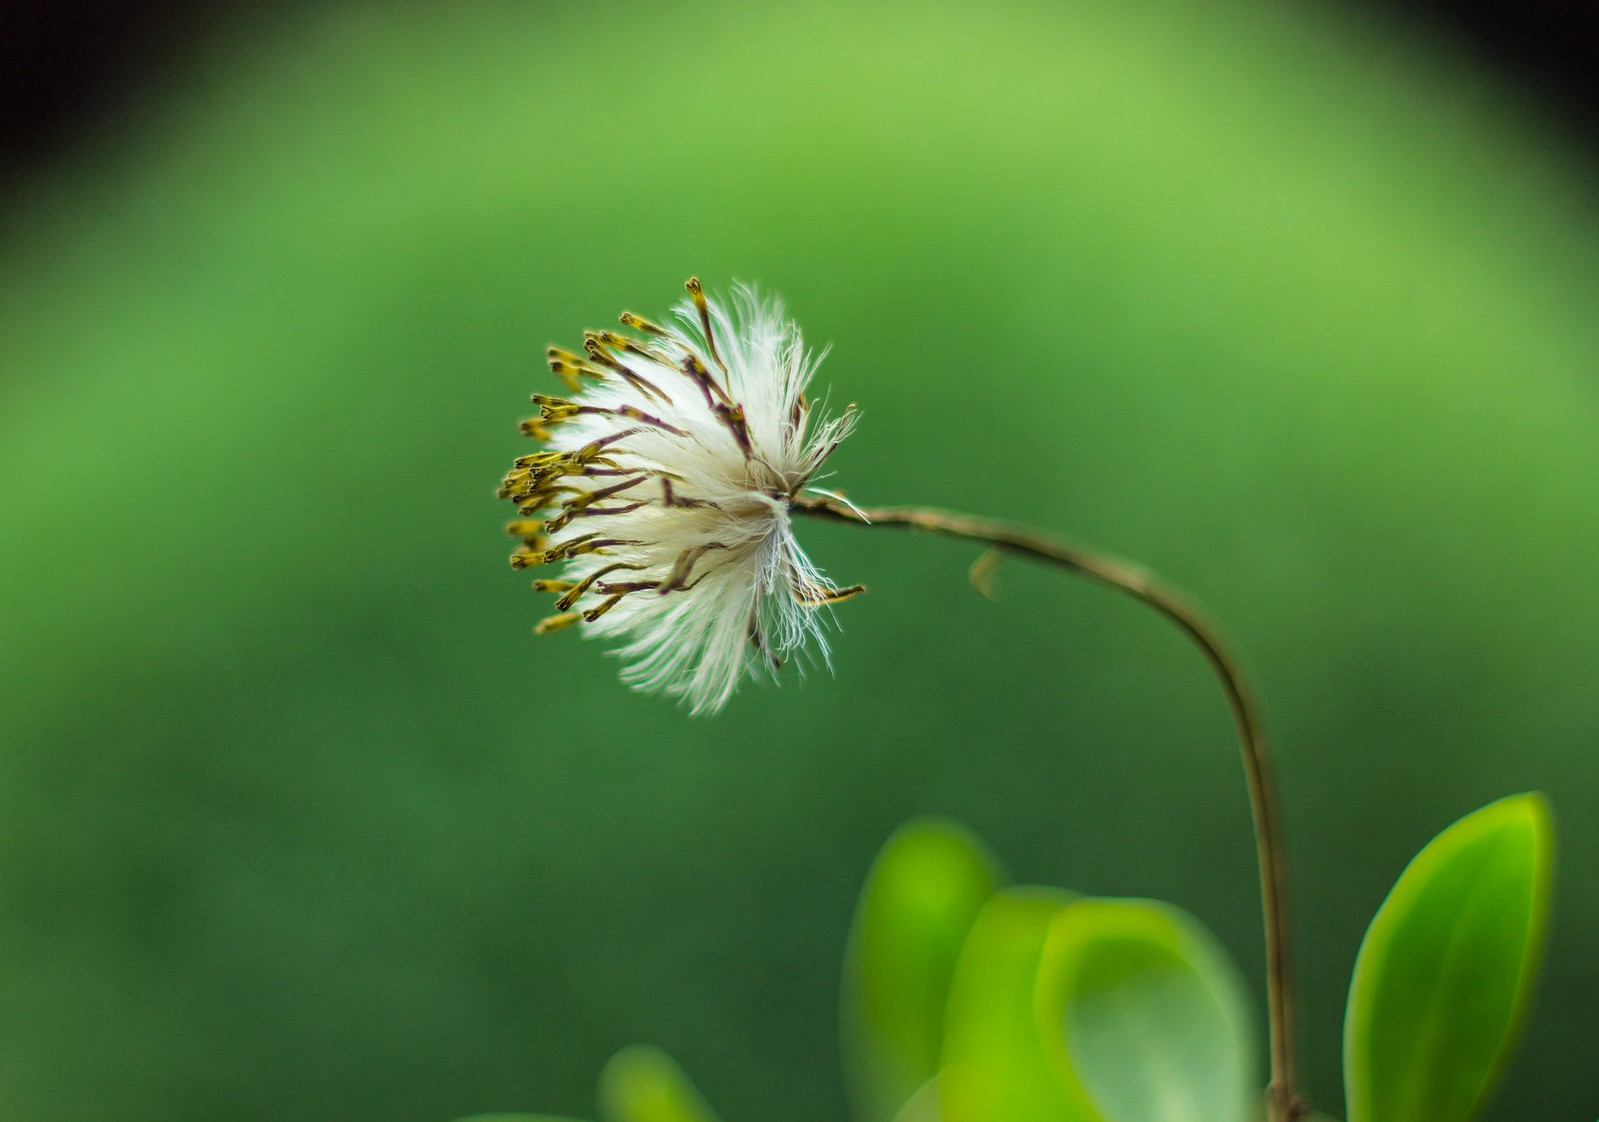 An aging dandelion with white tufts, ready to be blown away, in blurry green background with, blurred leaves.